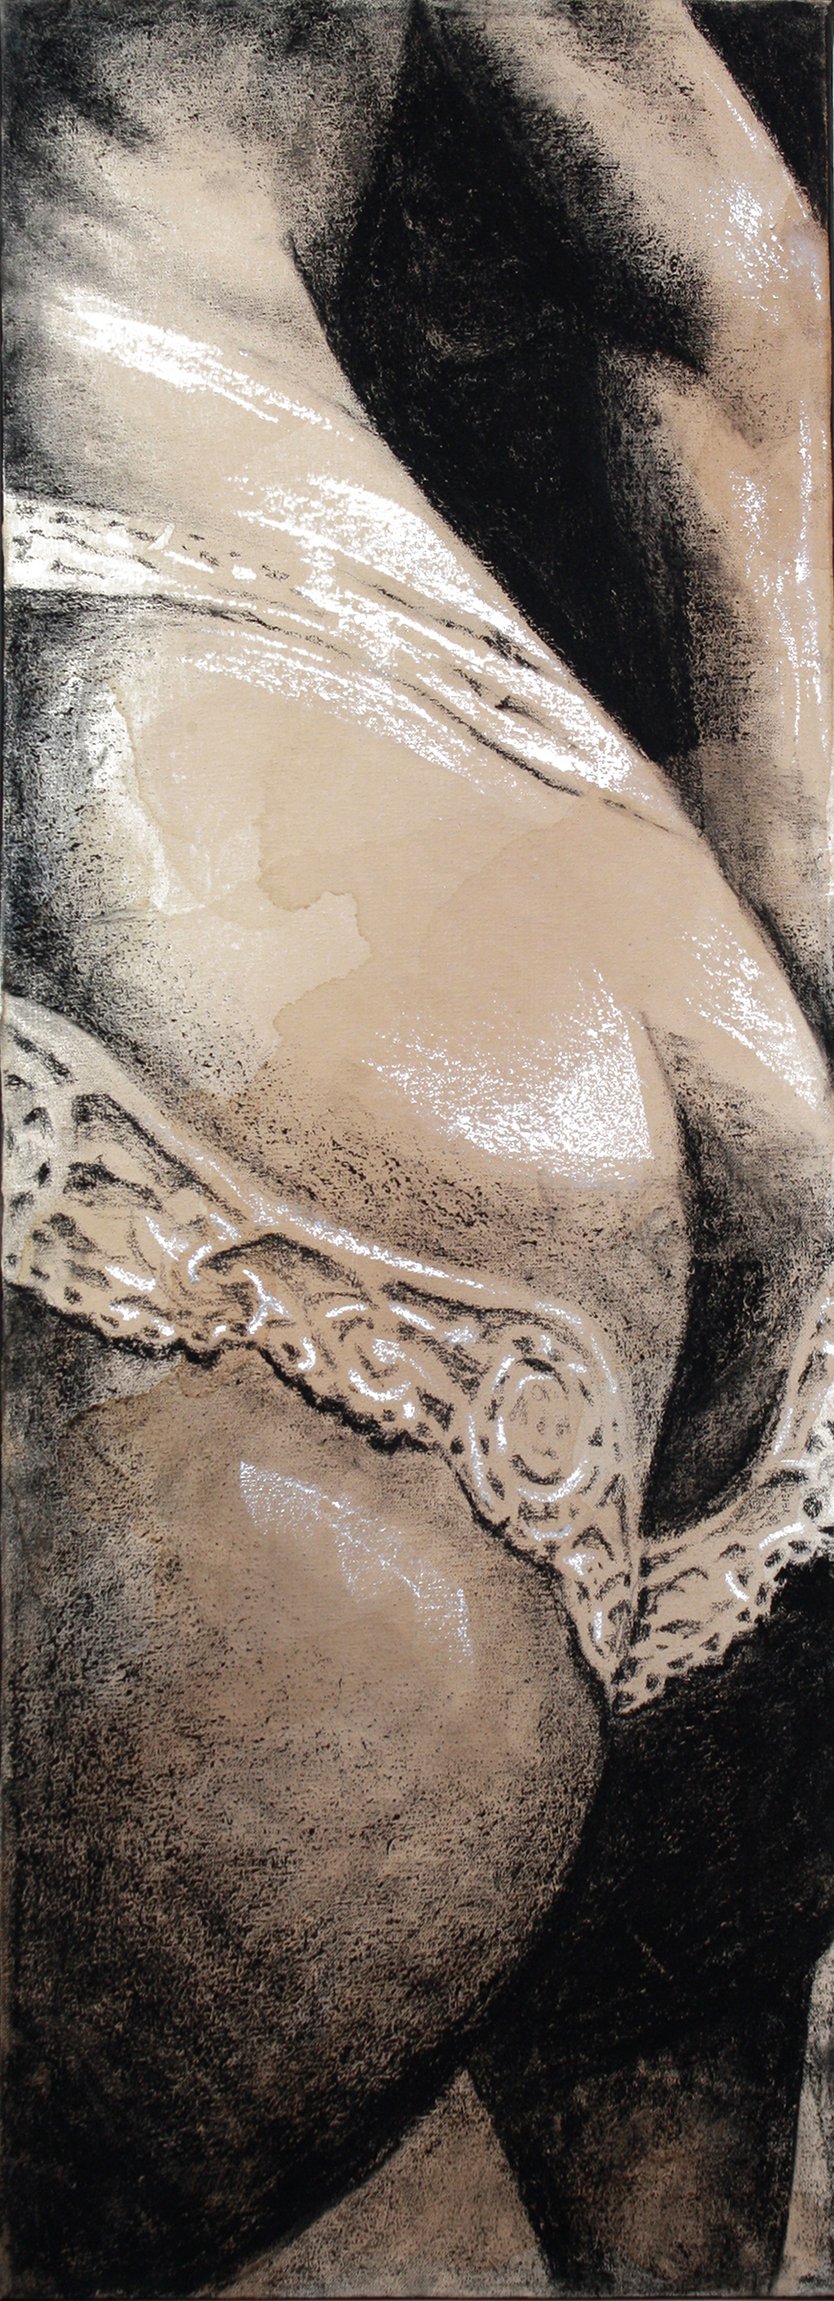 Sexting IMG.201405.002  Charcoal & Tea on Canvas ©2014 The Femme Project